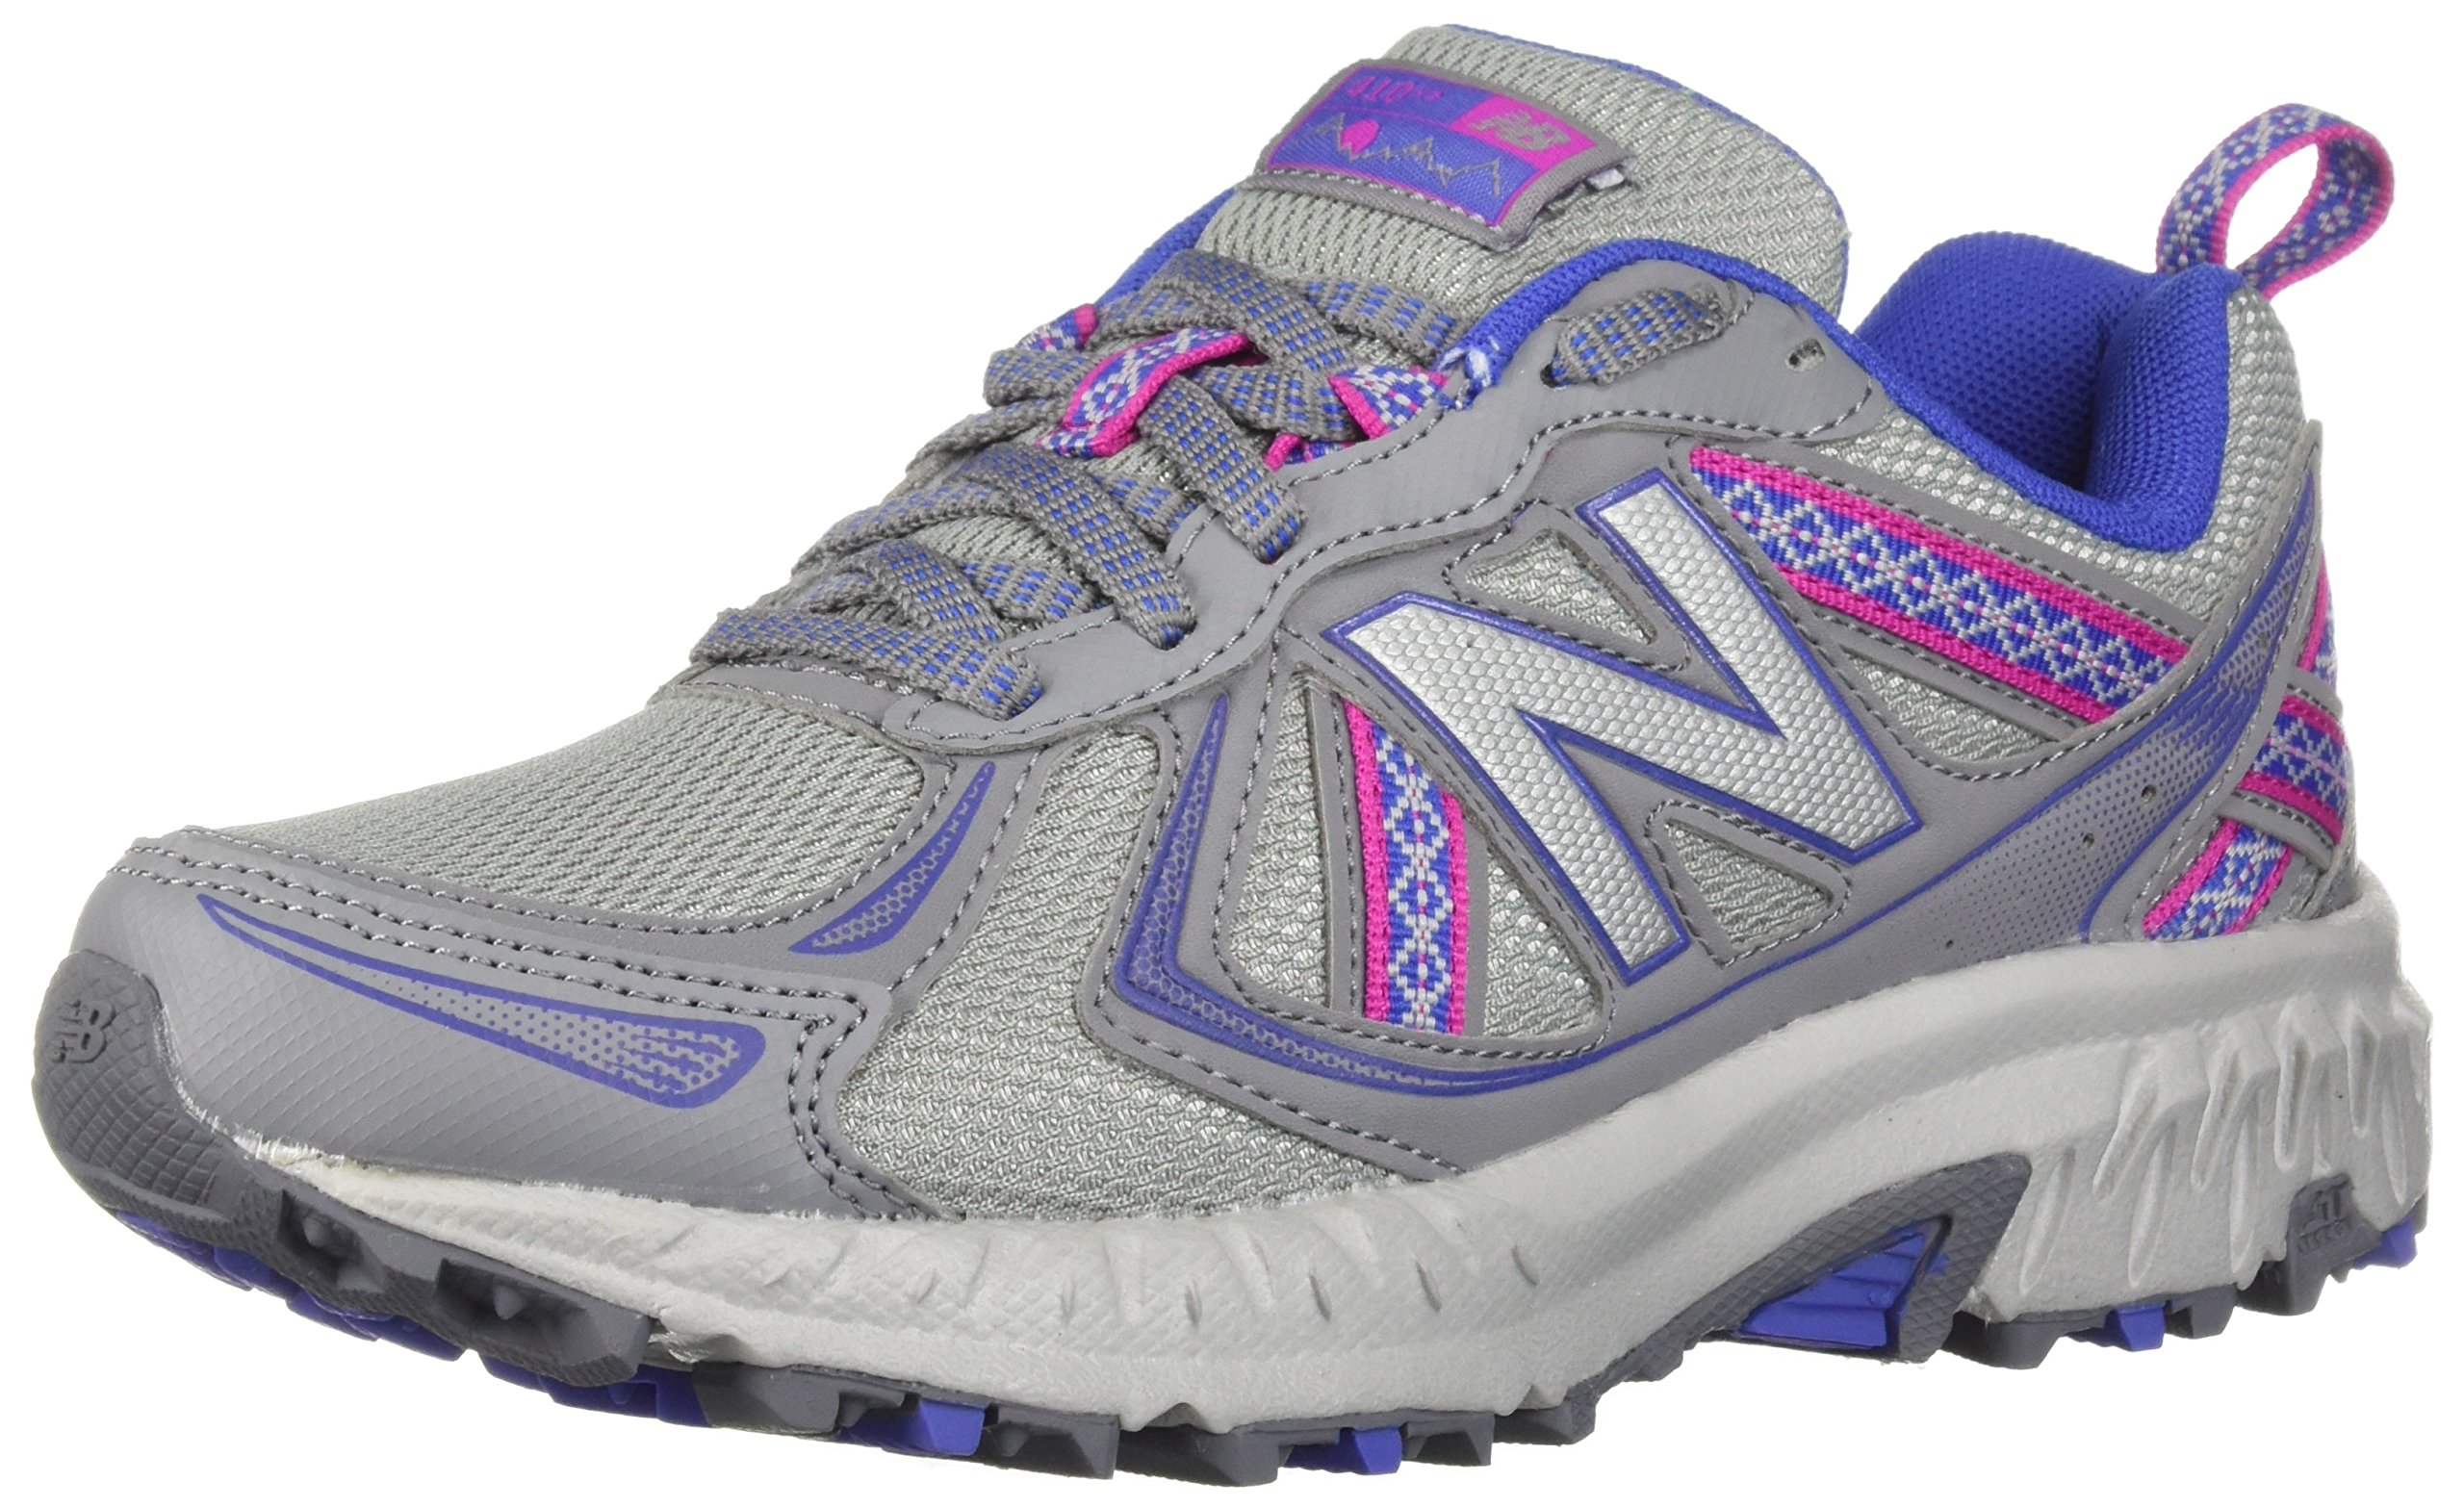 New Balance Women's WT410v5 Cushioning Trail Running Shoe, Steel, 5.5 B US by New Balance